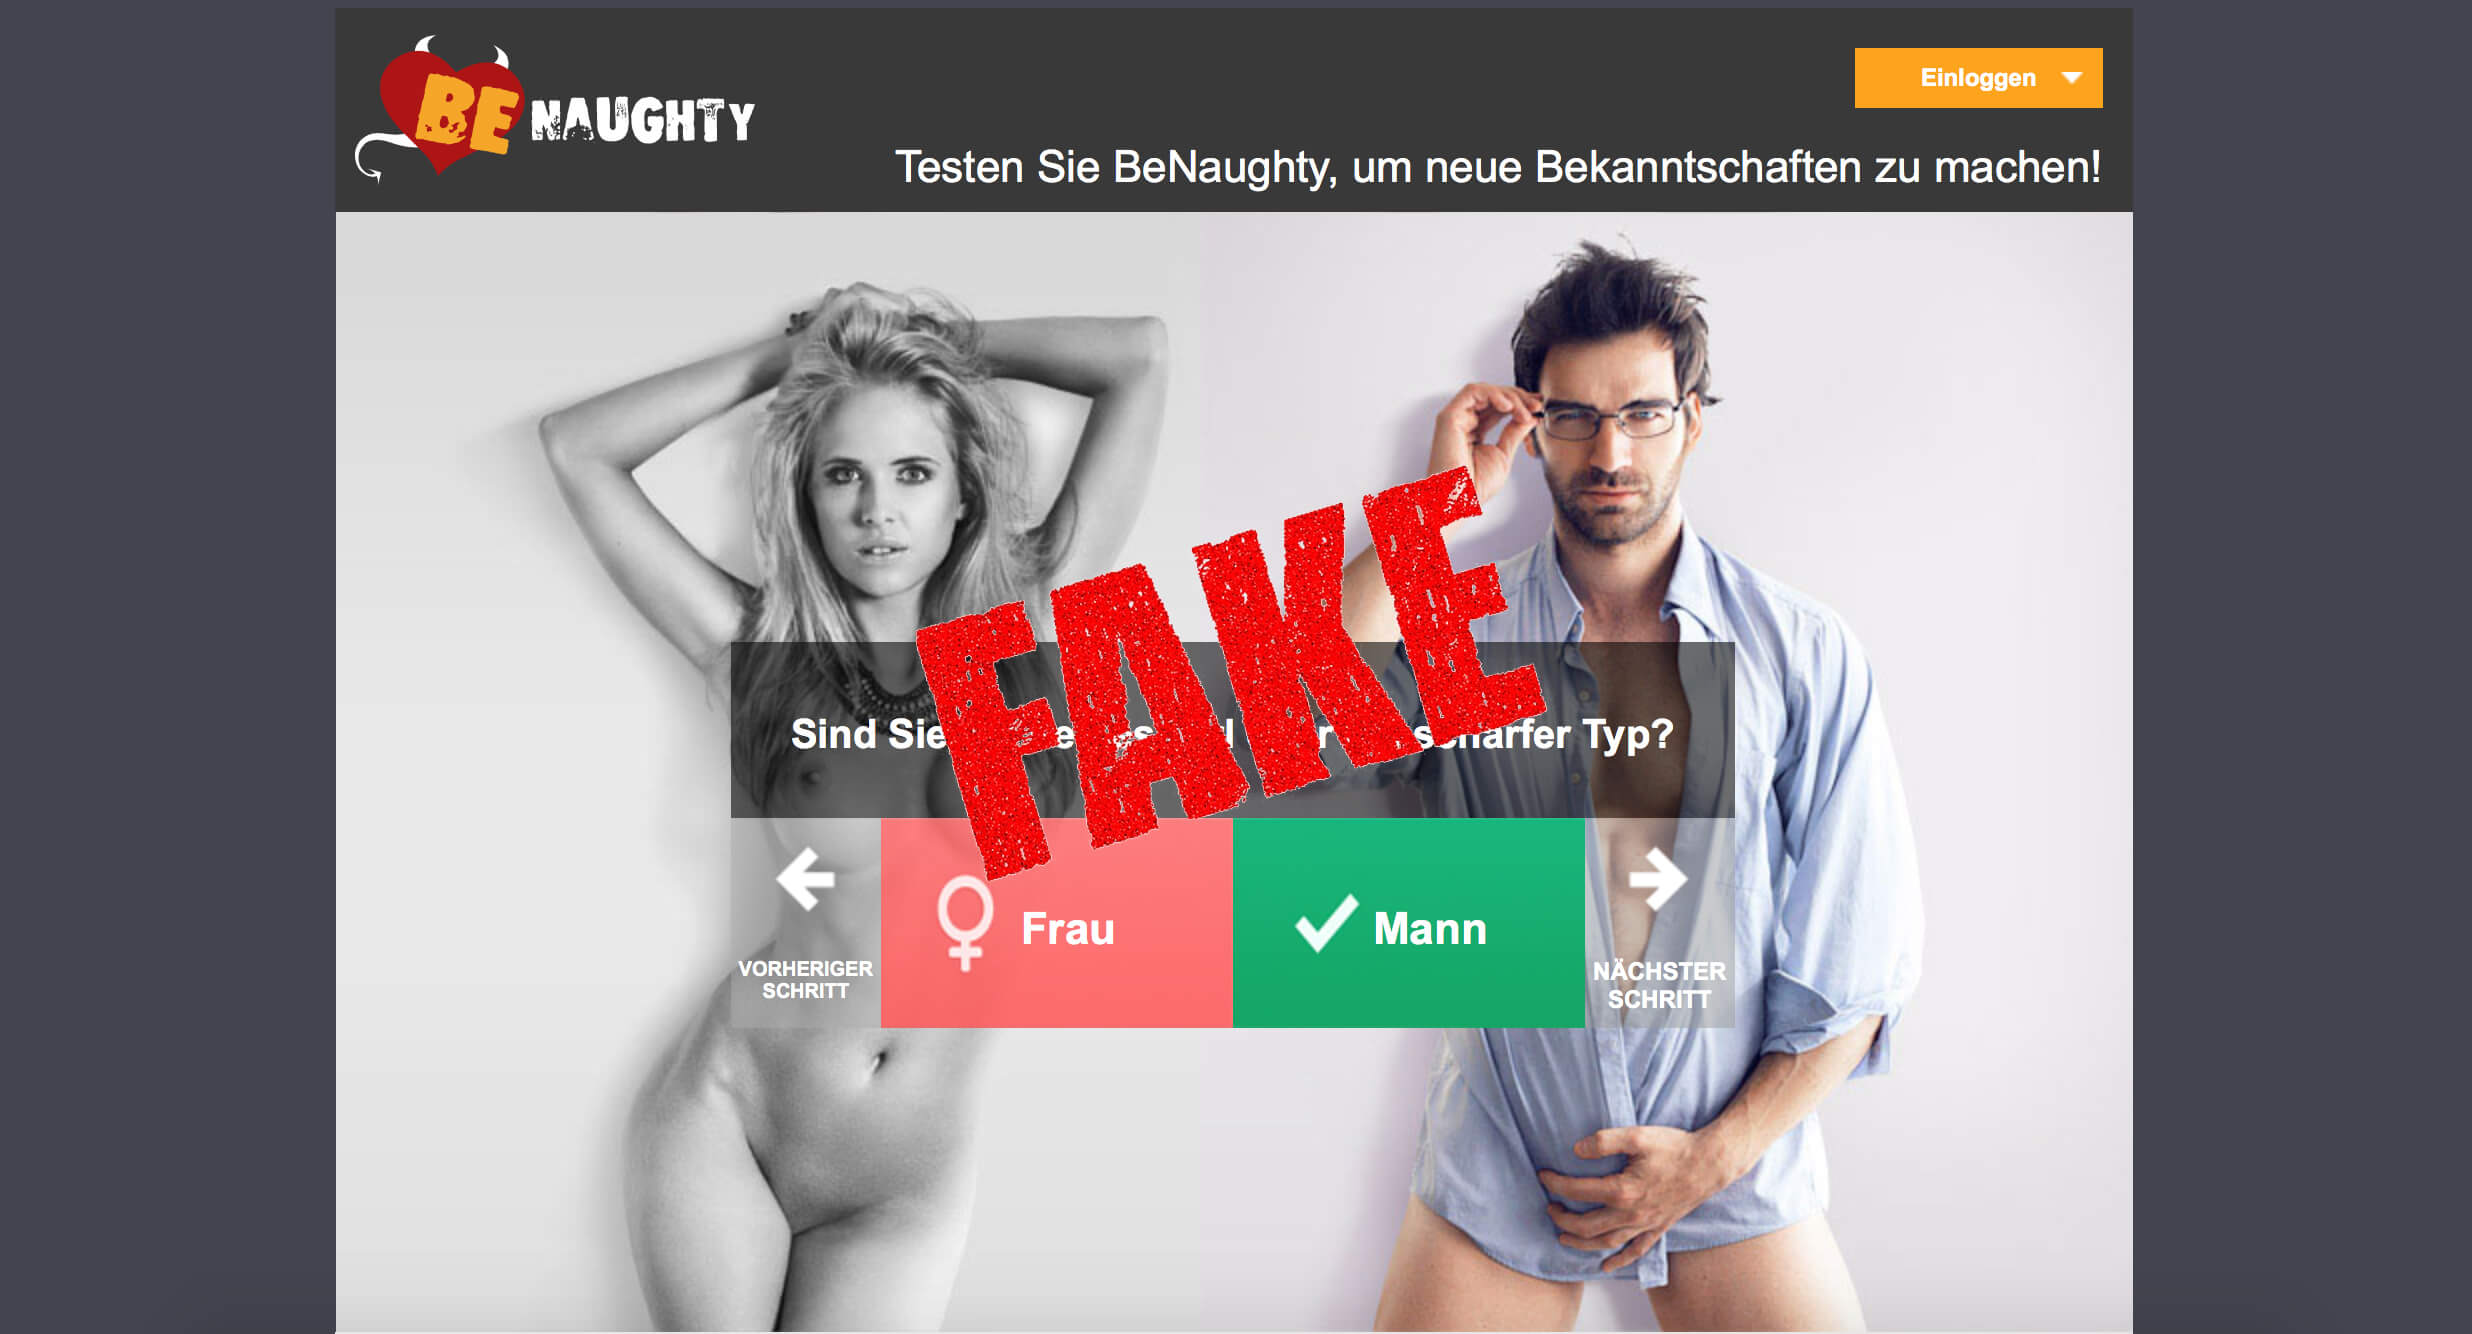 Fake Spam - benaughty.com